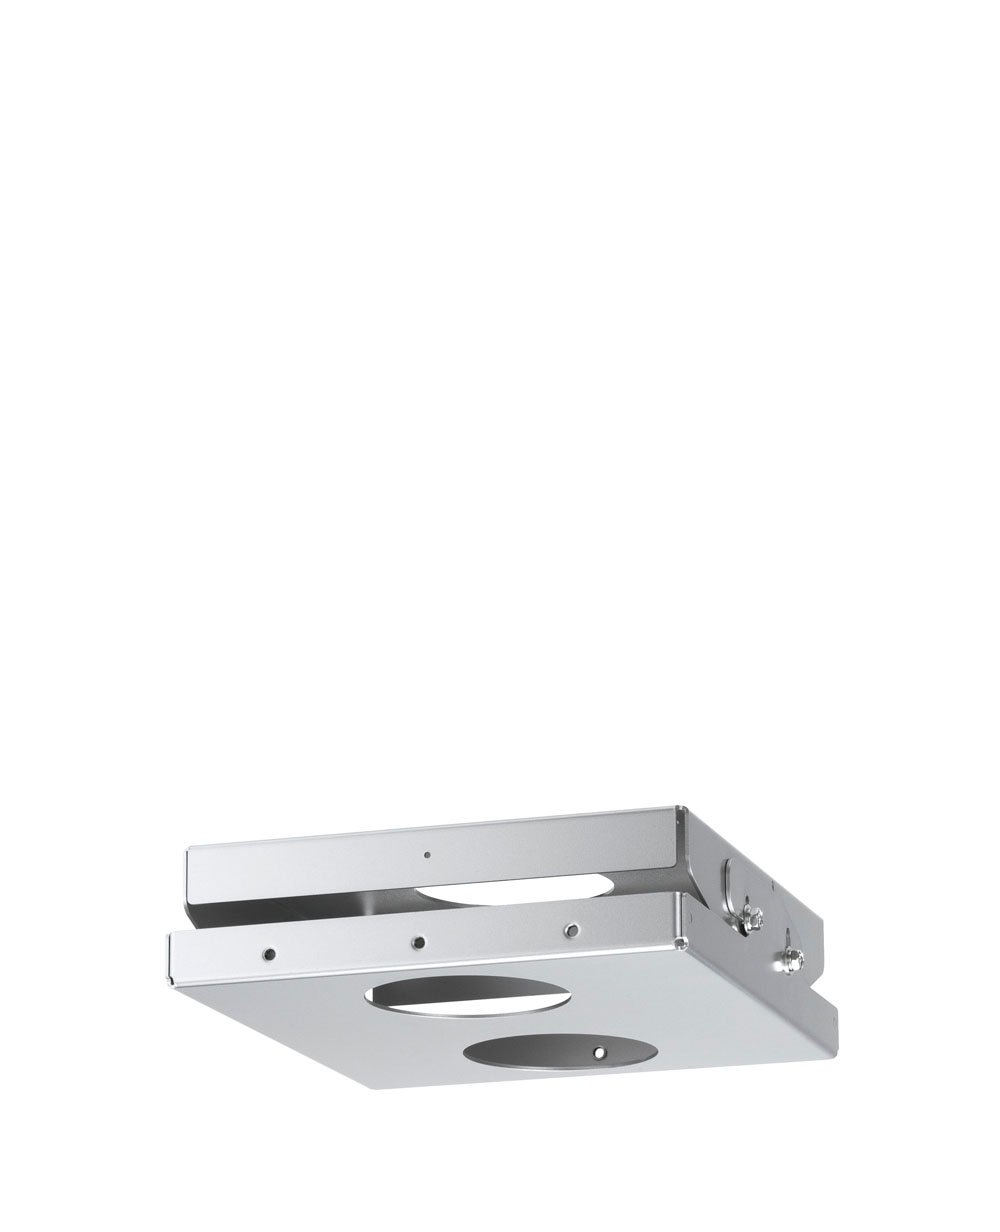 Low Ceiling Projector Mount for PT-DZ870 Series Projectors